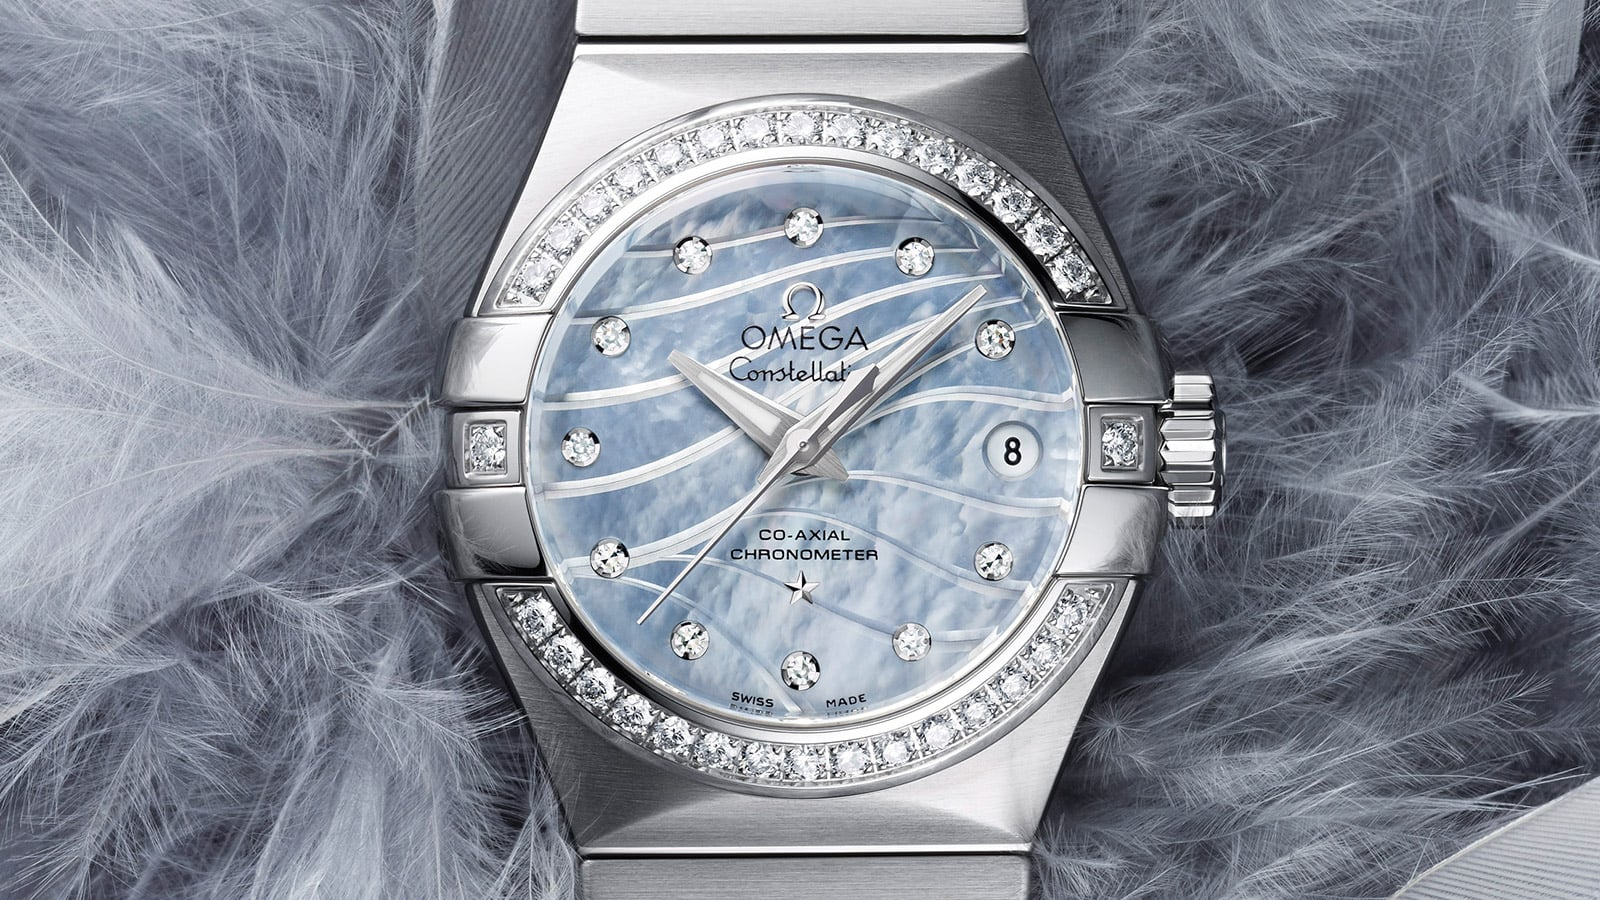 Closeup view of a Constellation watch for women with a stainless steel and diamond encrusted watch case and a blue mother-of-pearl dial